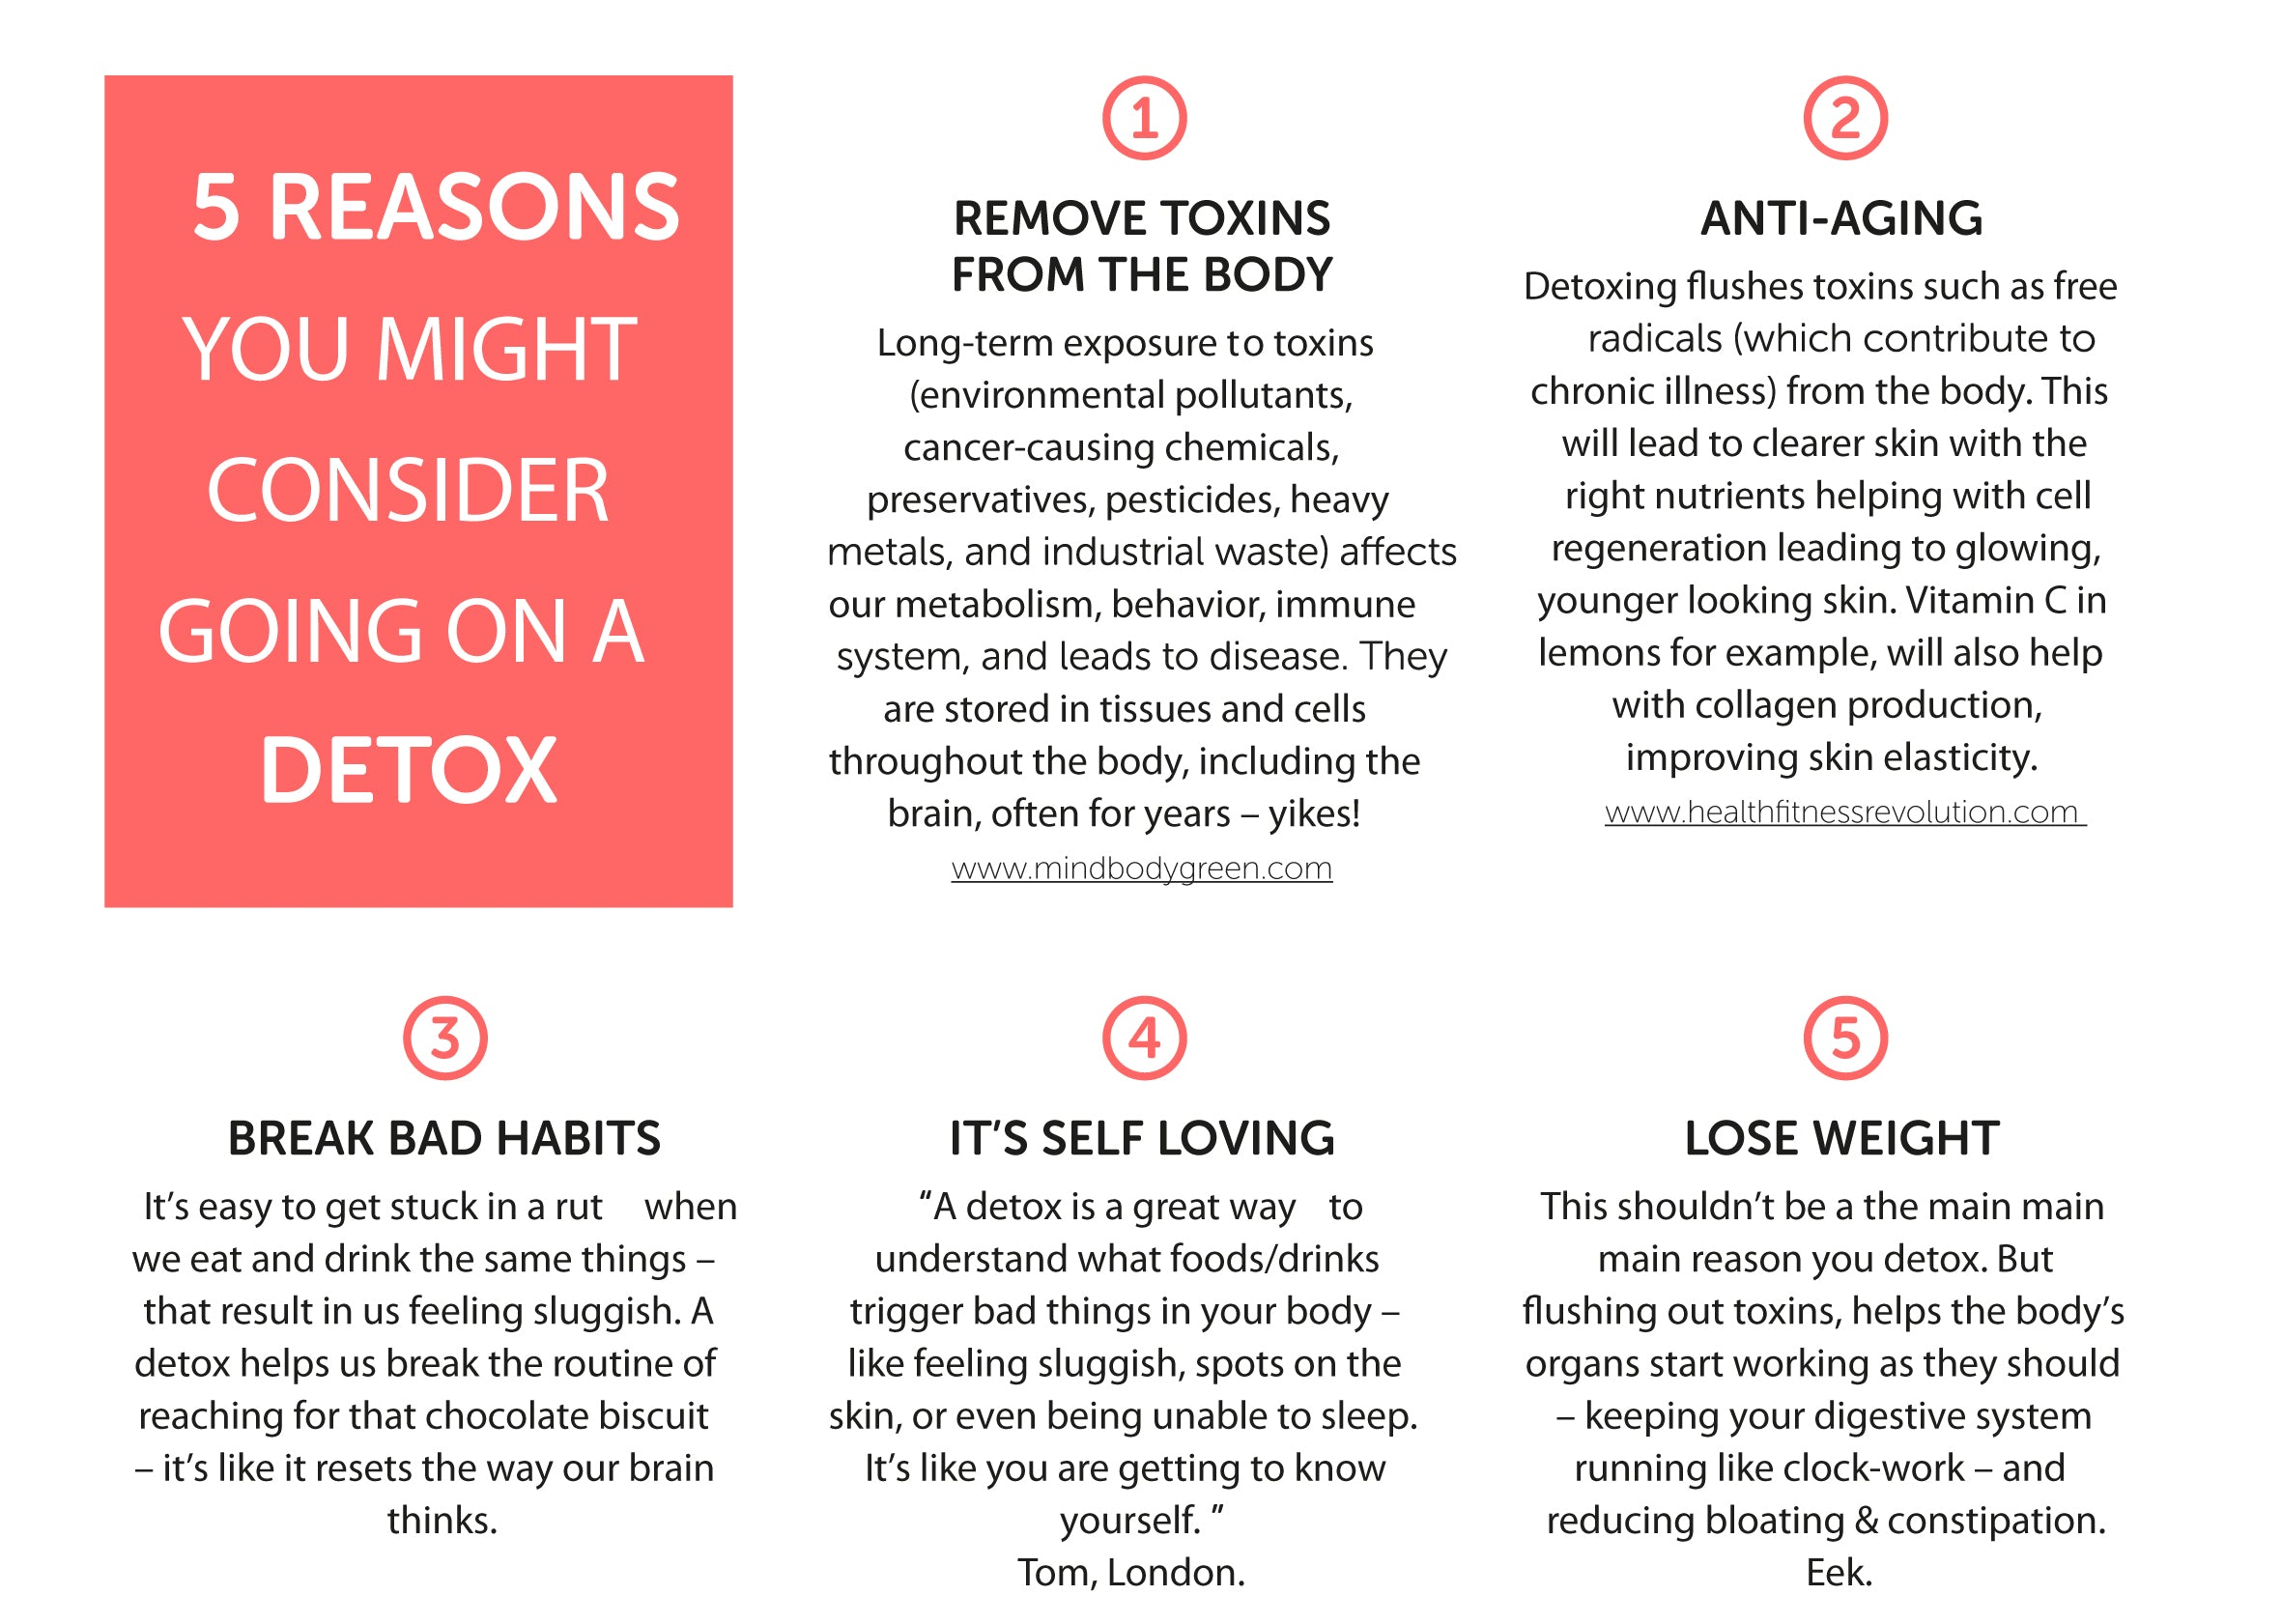 5 Reasons you might choose to detox